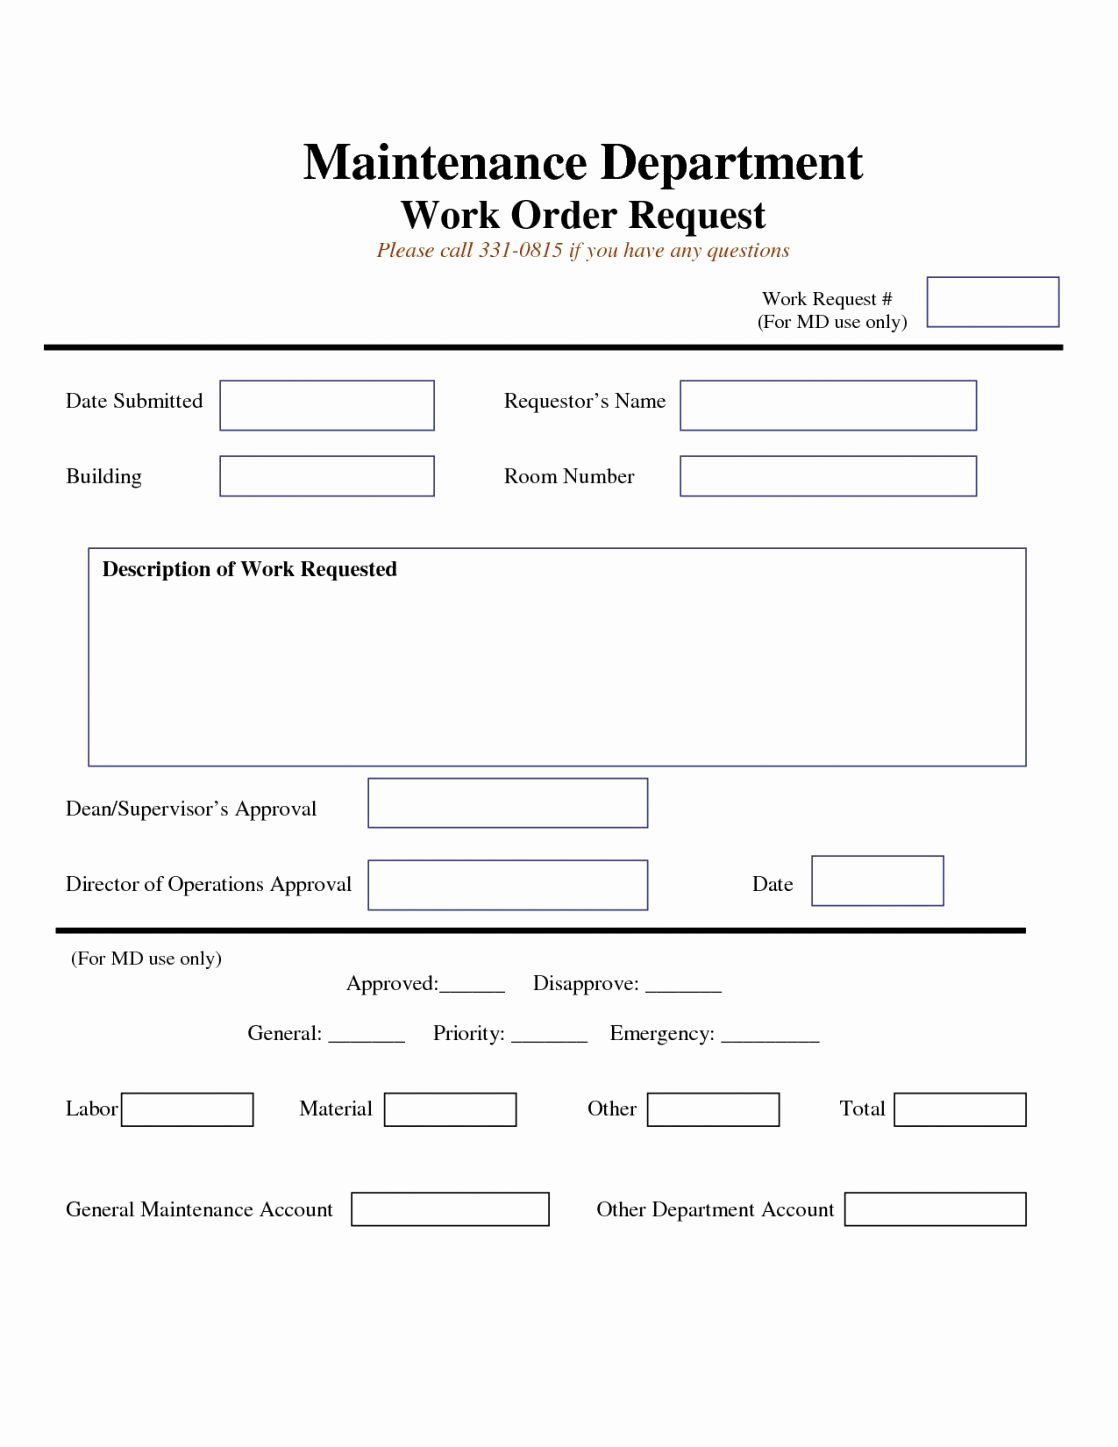 Tenant Maintenance Request Form Template Inspirational Business Form Template Amazing Tenant Repai Maintenance Jobs Business Plan Template Computer Maintenance Tenant maintenance request form template